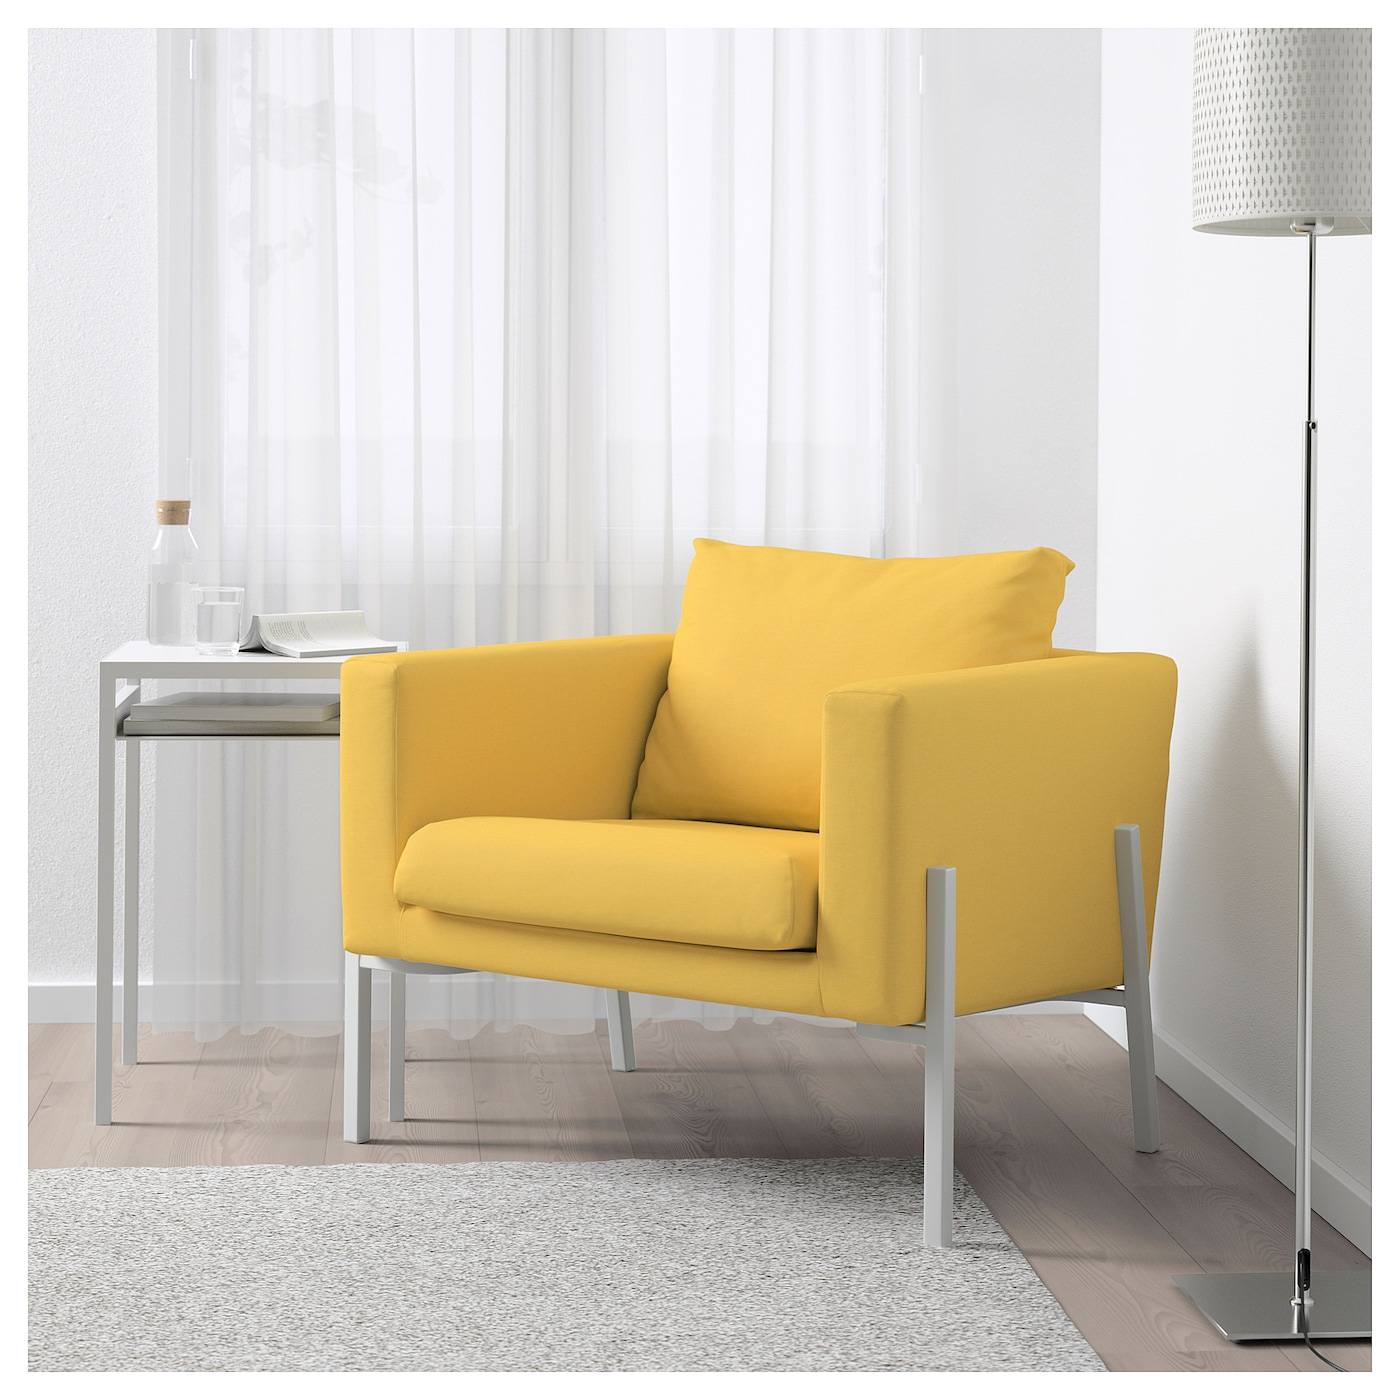 koarp fauteuil orrsta jaune dor blanc ikea. Black Bedroom Furniture Sets. Home Design Ideas